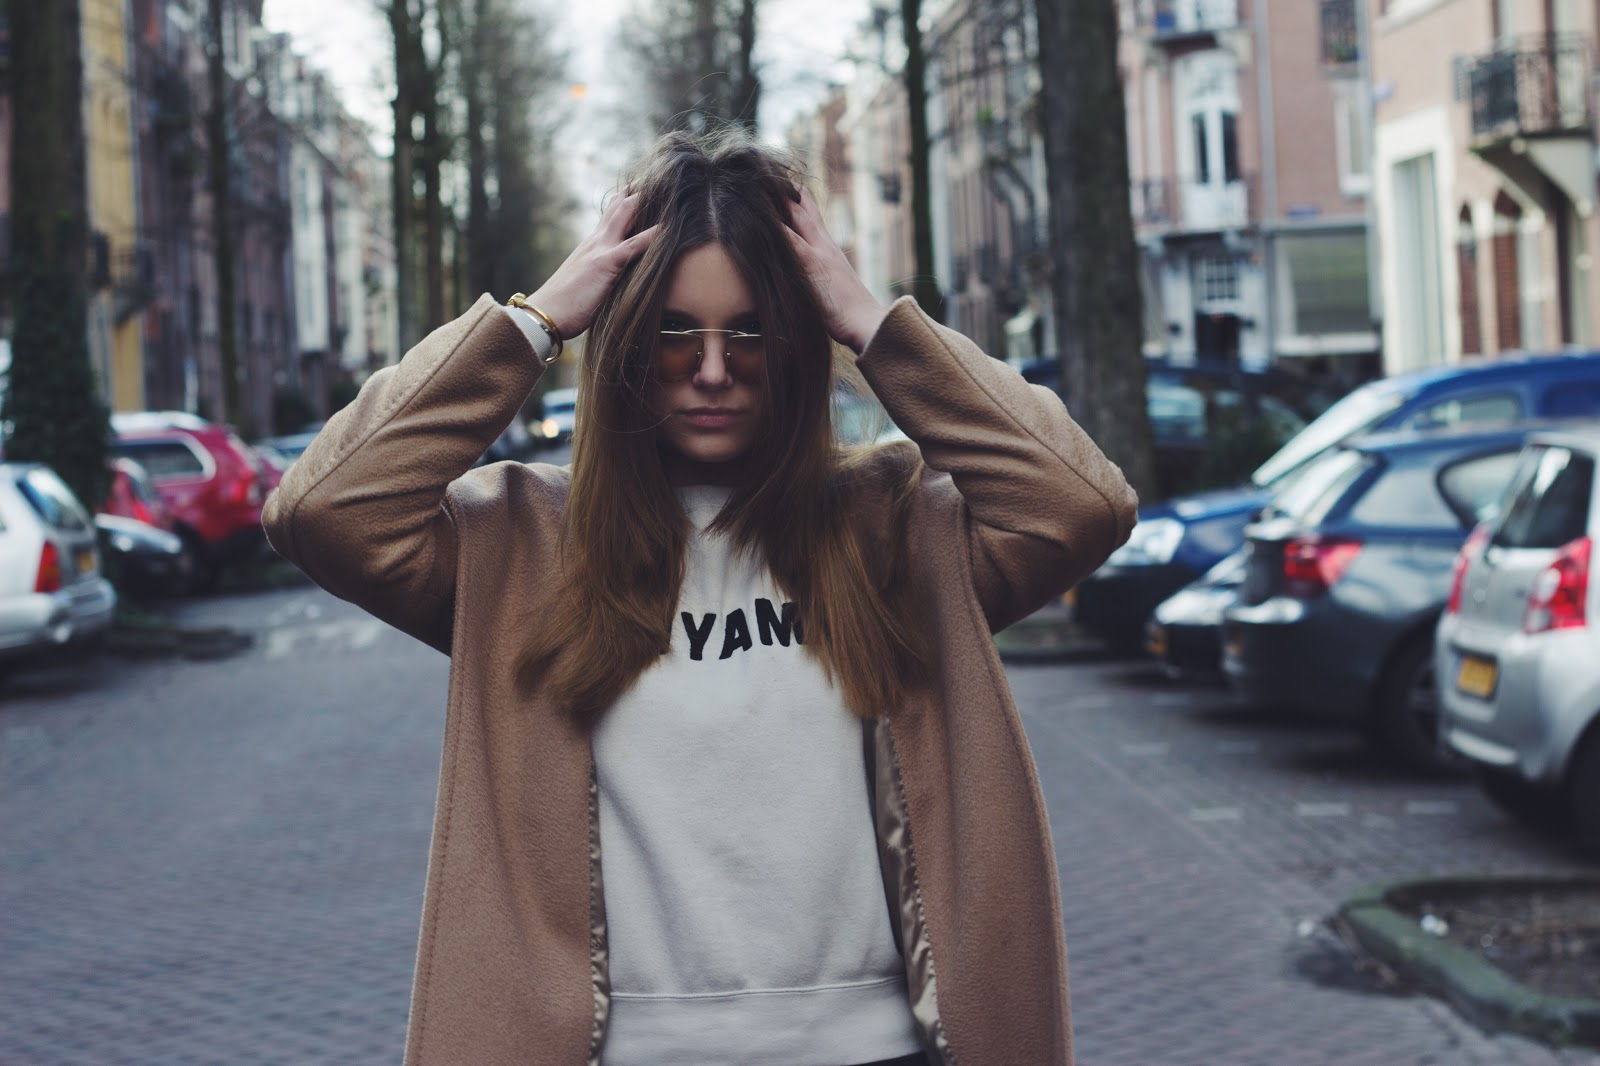 Dominique, Candido, Blogger, fashion, mode, blog, coat, rialto, prada, sunglasses, j brand, jeans, isabel marant, sweater, shoes,